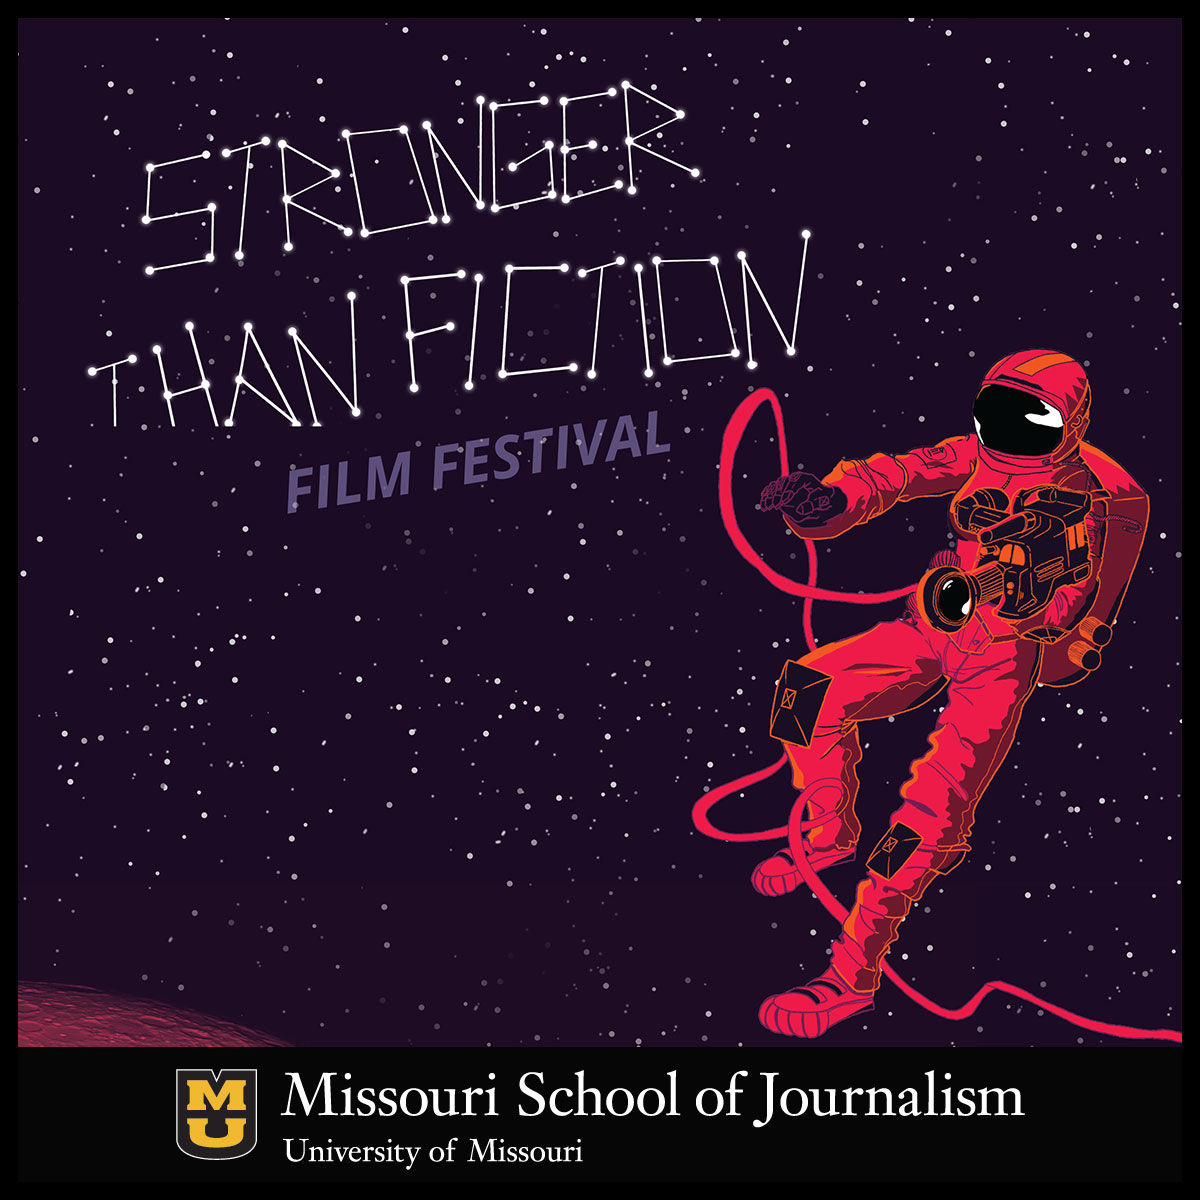 Stronger Than Fiction Film Festival